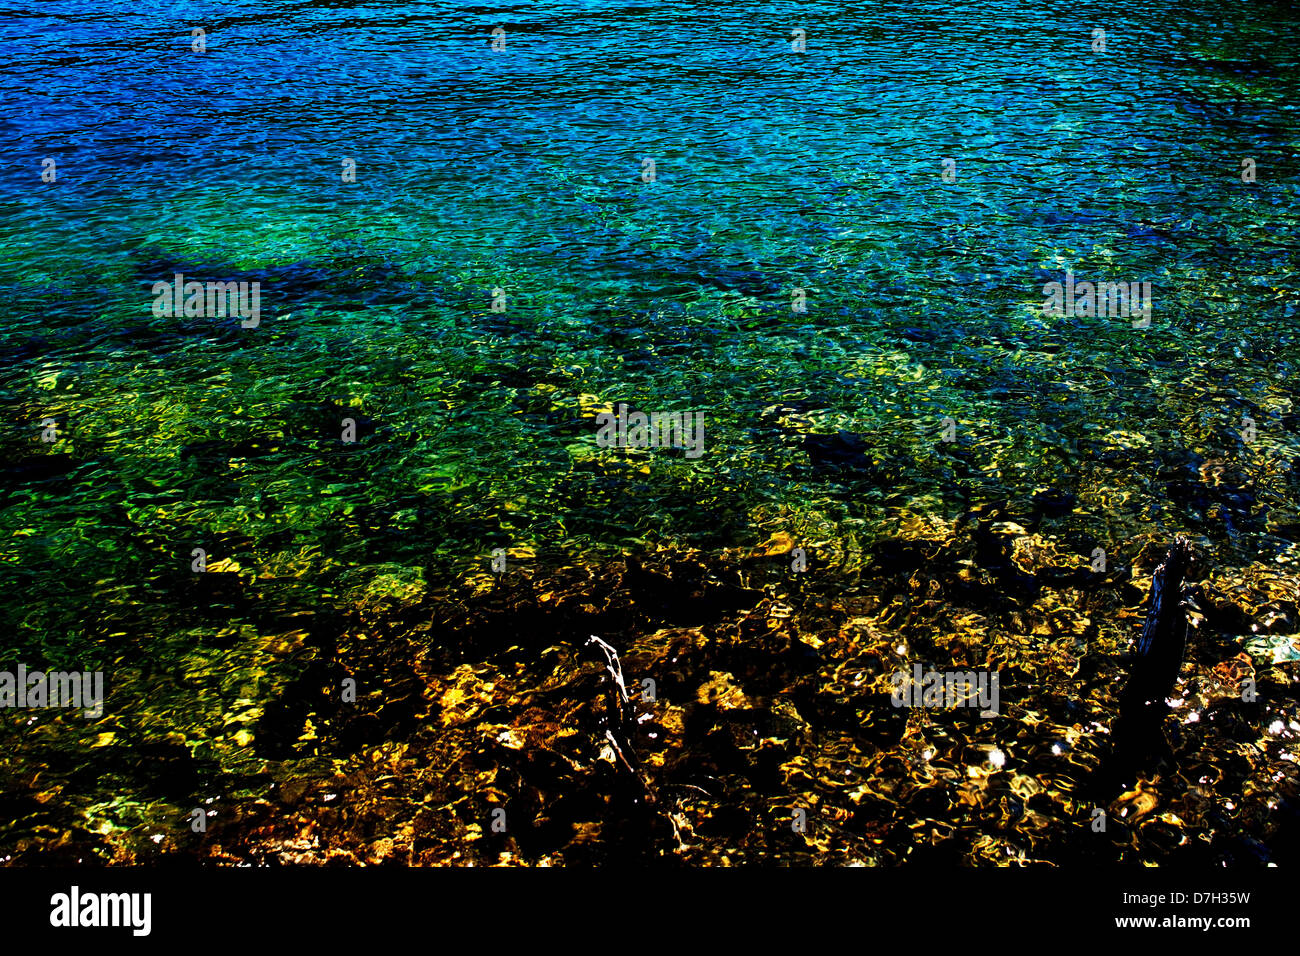 Shiny colour water reflections - Stock Image